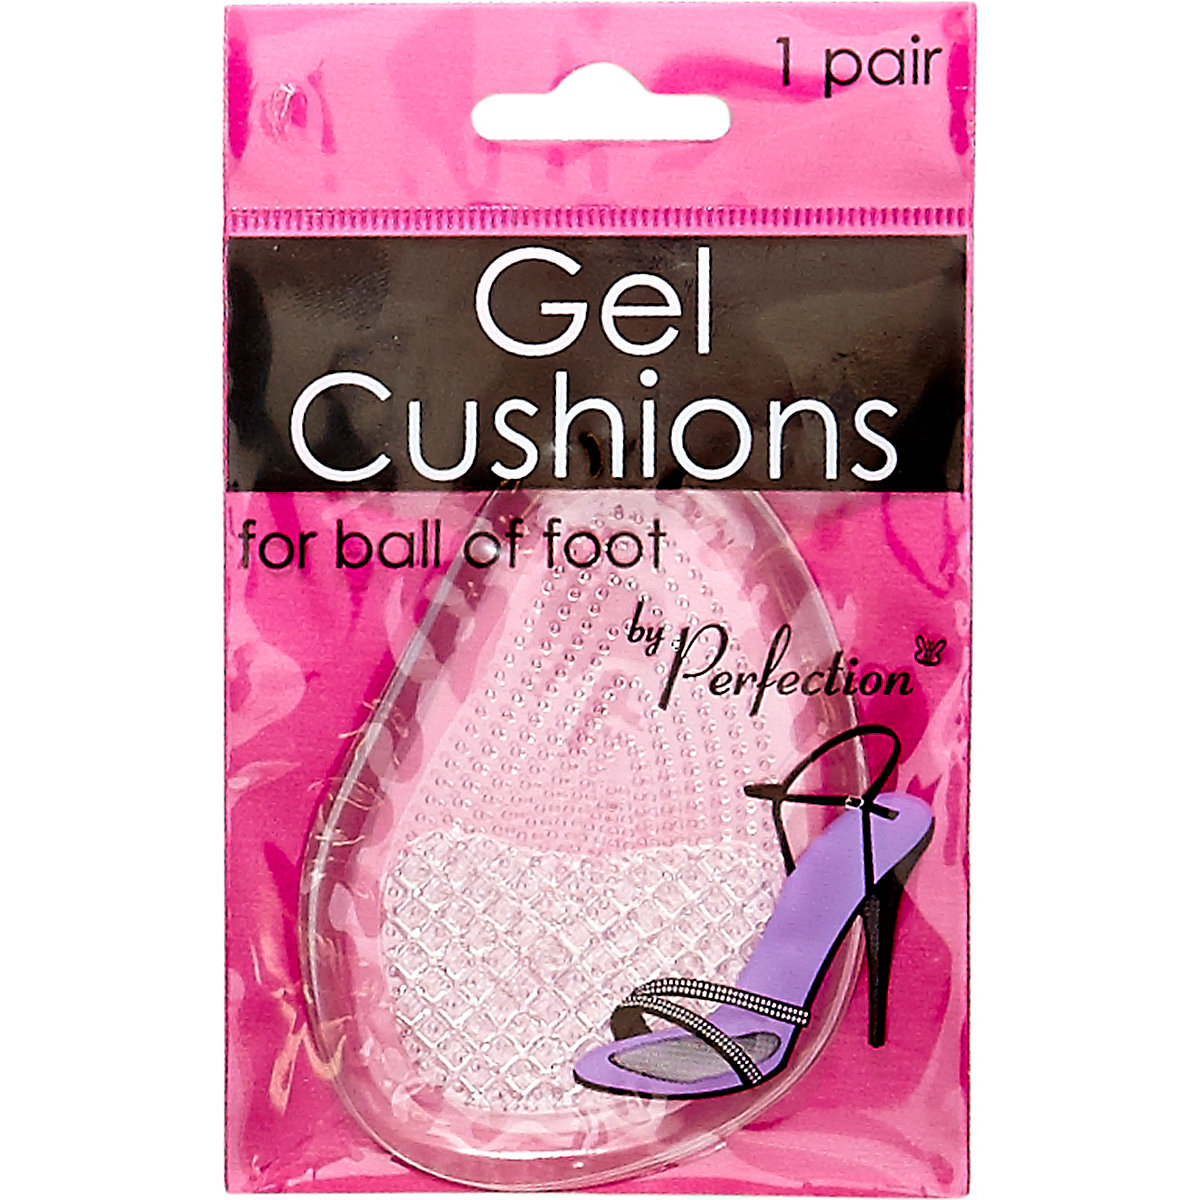 Gel shoe cushions